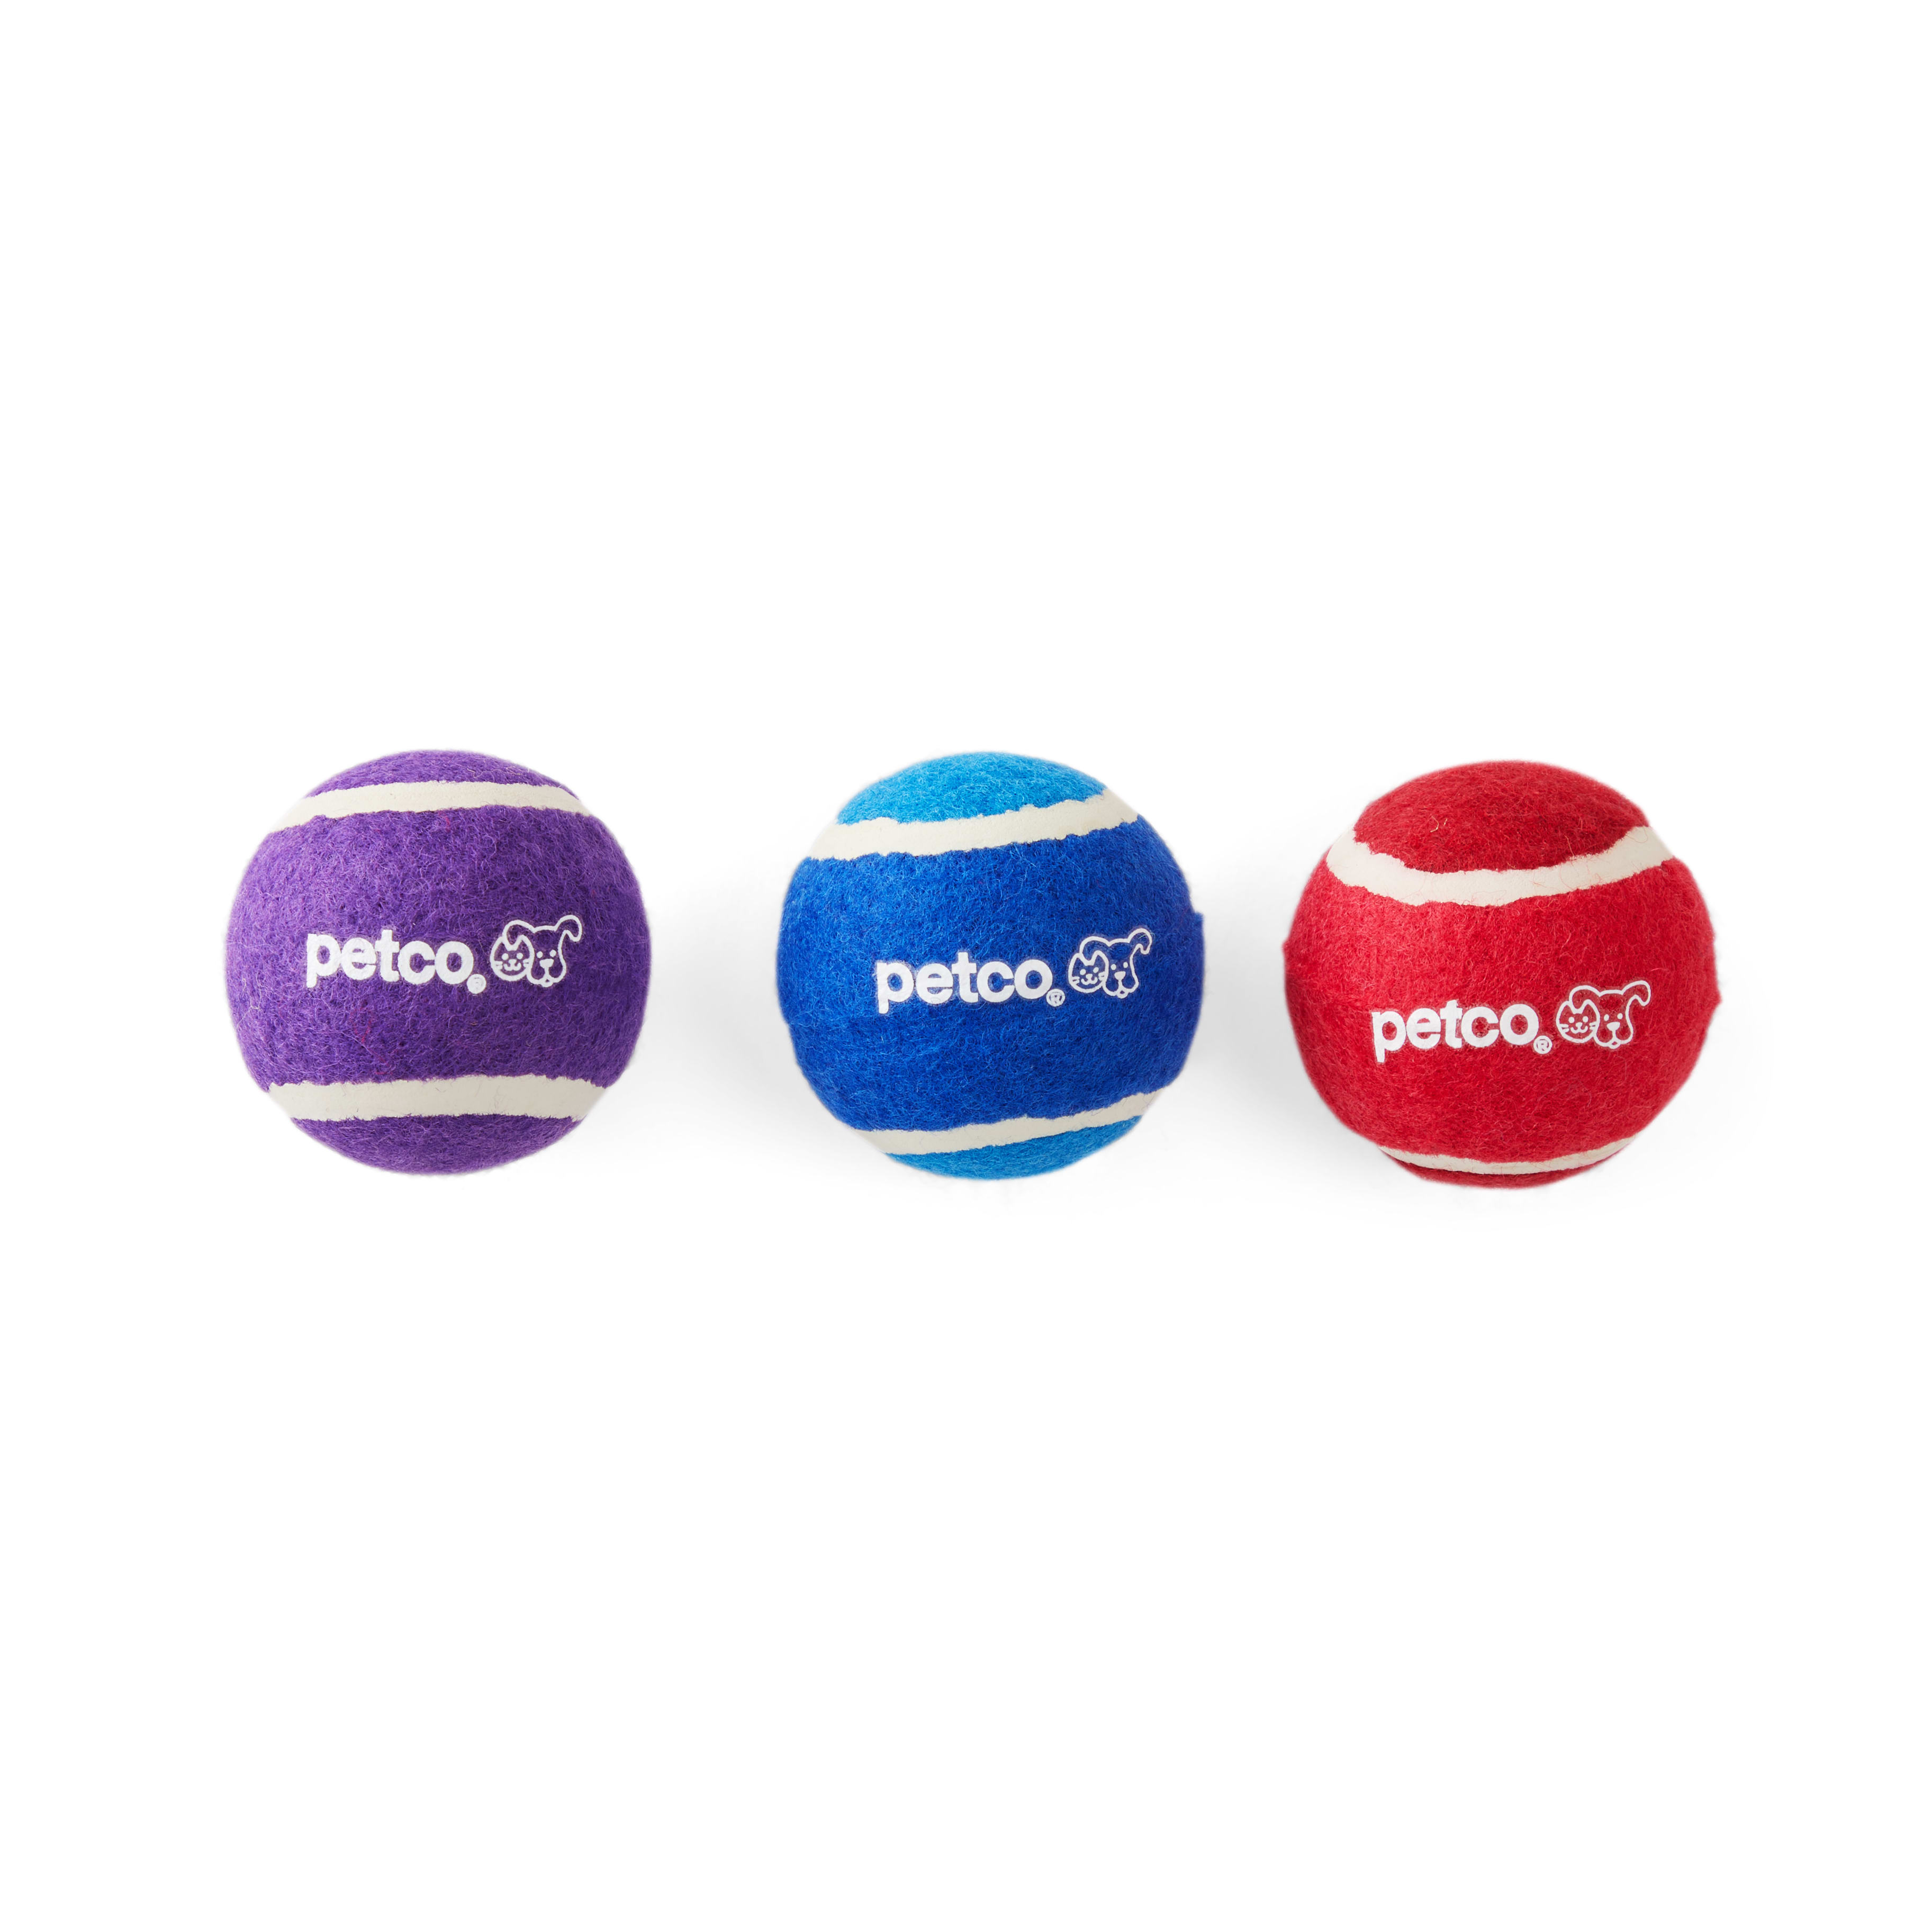 Petco Tennis Ball Dog Toy Set In Assorted Colors 2 Petco